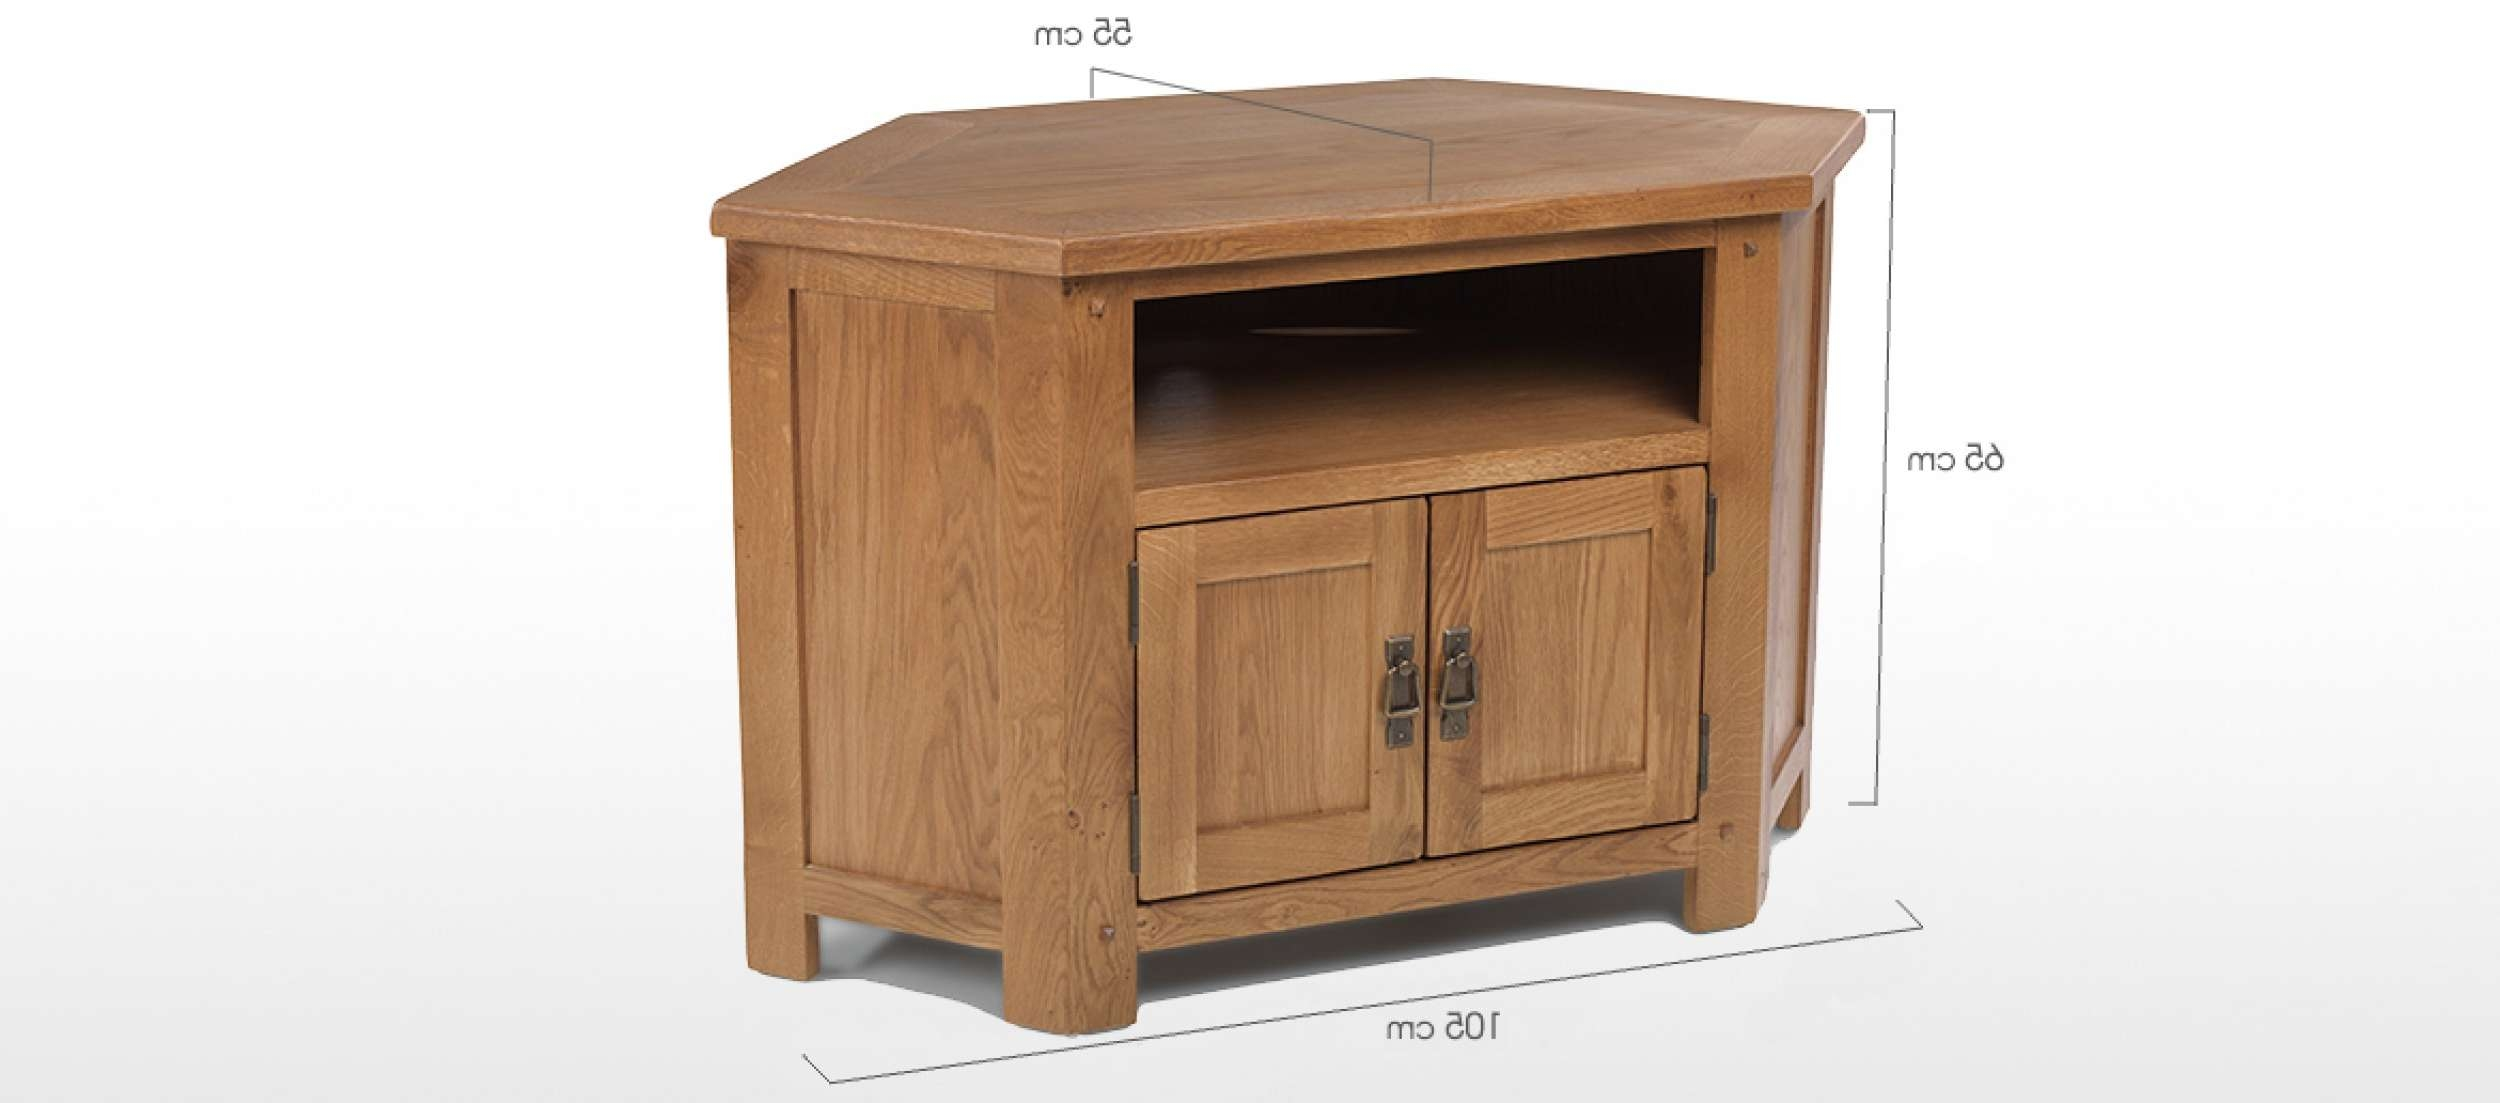 Rustic Oak Corner Tv Cabinet | Quercus Living Pertaining To Wood Corner Tv Cabinets (View 10 of 20)